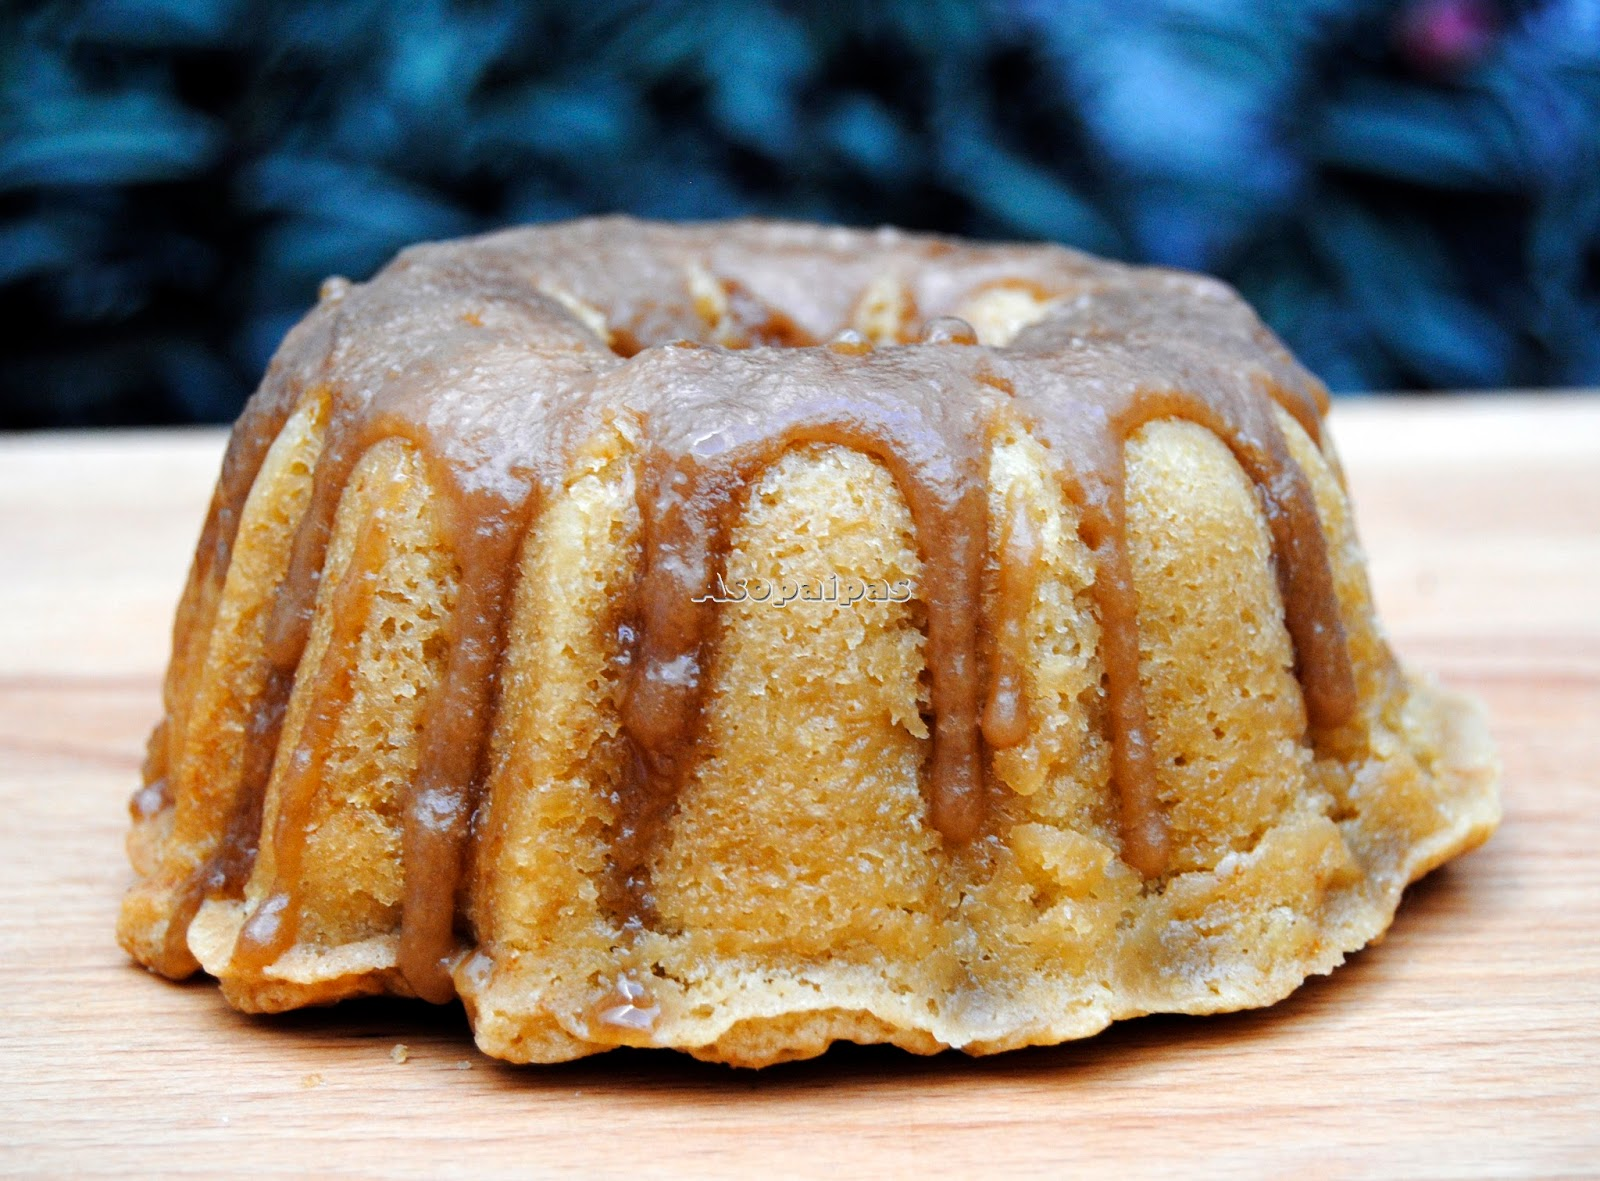 Bundt Cake de Azúcar Moreno (Brown Sugar Bundt Cake)